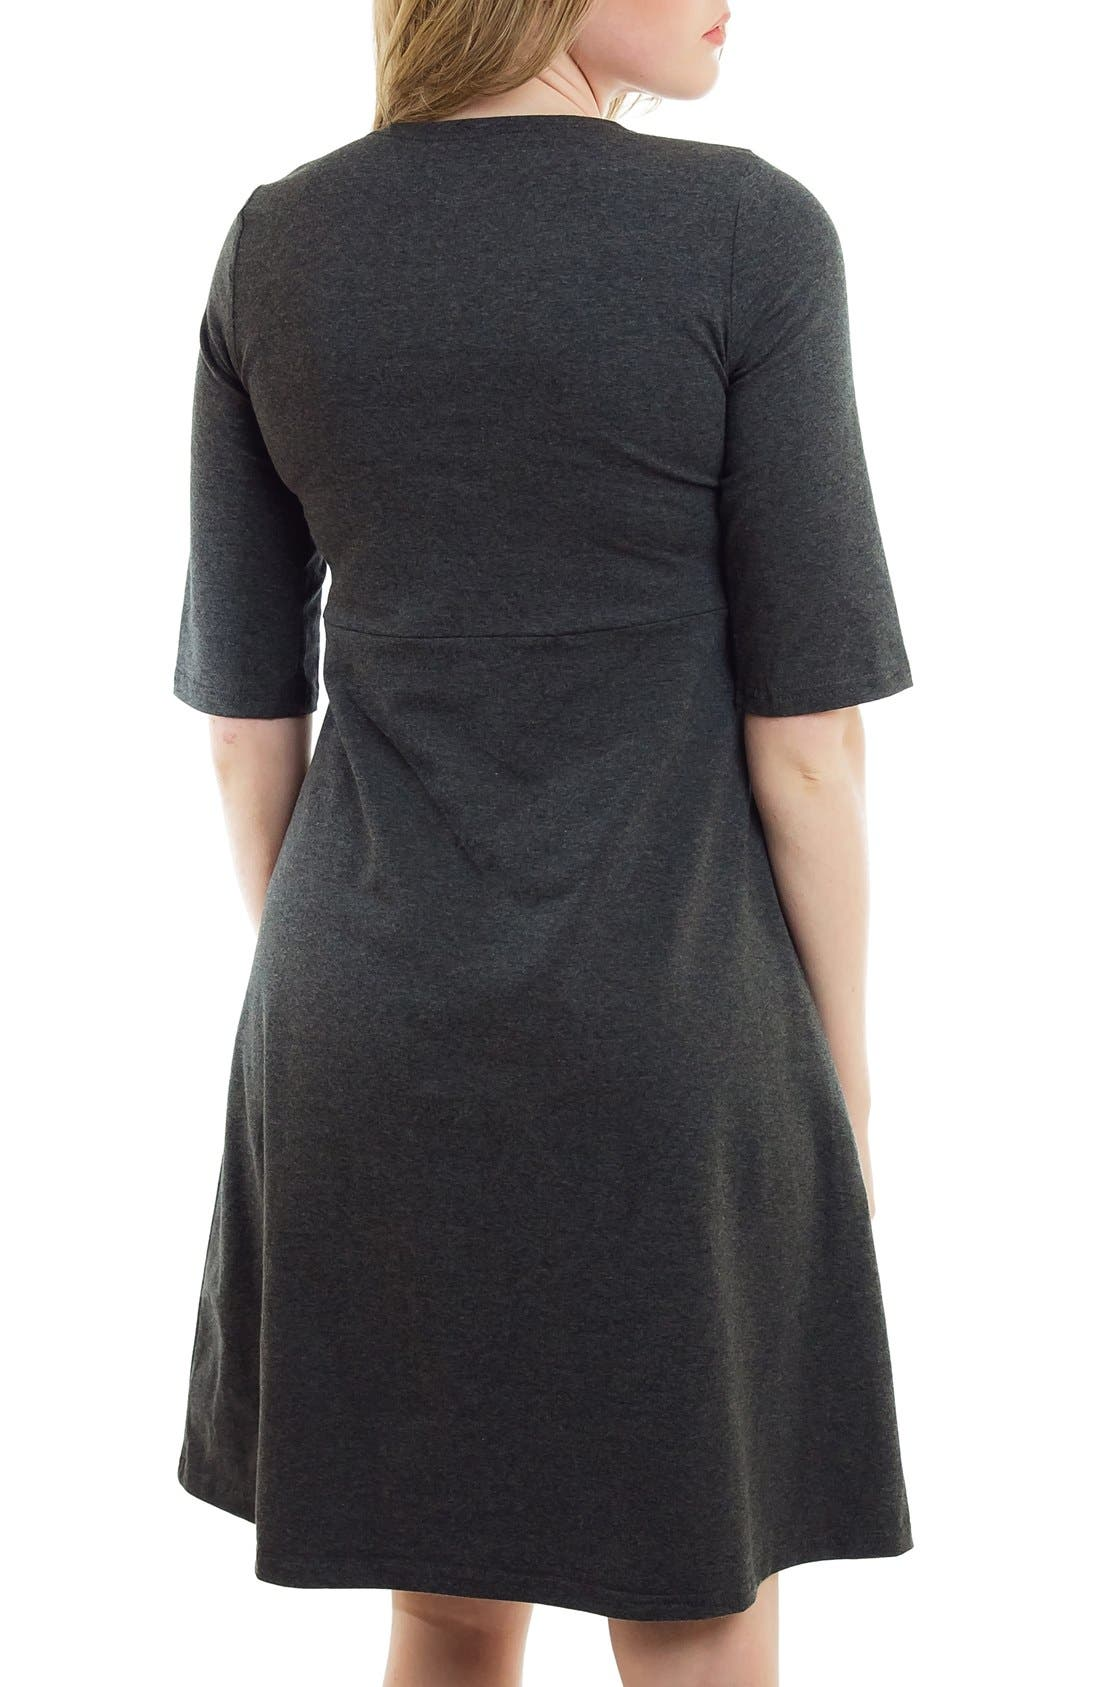 Crossover Maternity/Nursing Dress,                             Alternate thumbnail 6, color,                             HEATHER CHARCOAL